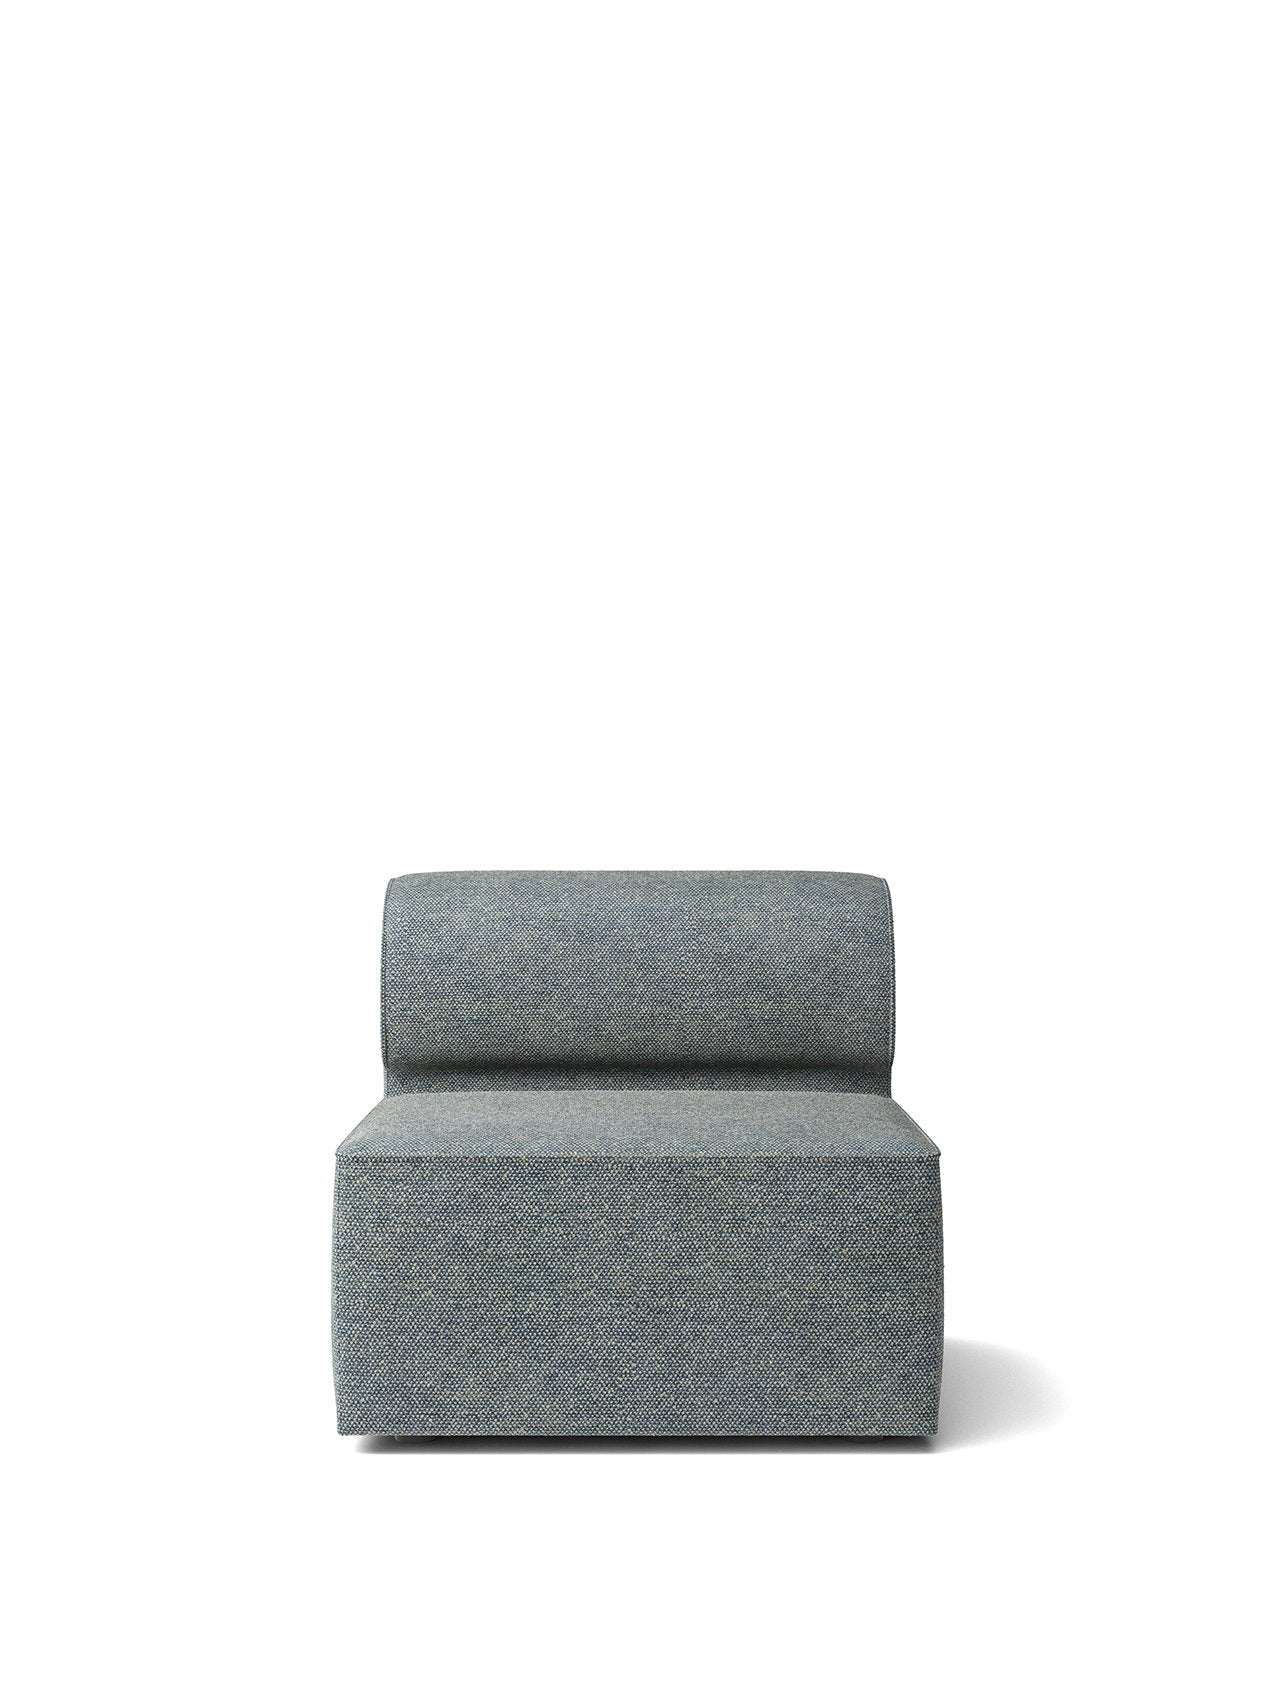 Eave Modular Sofa Middle Piece